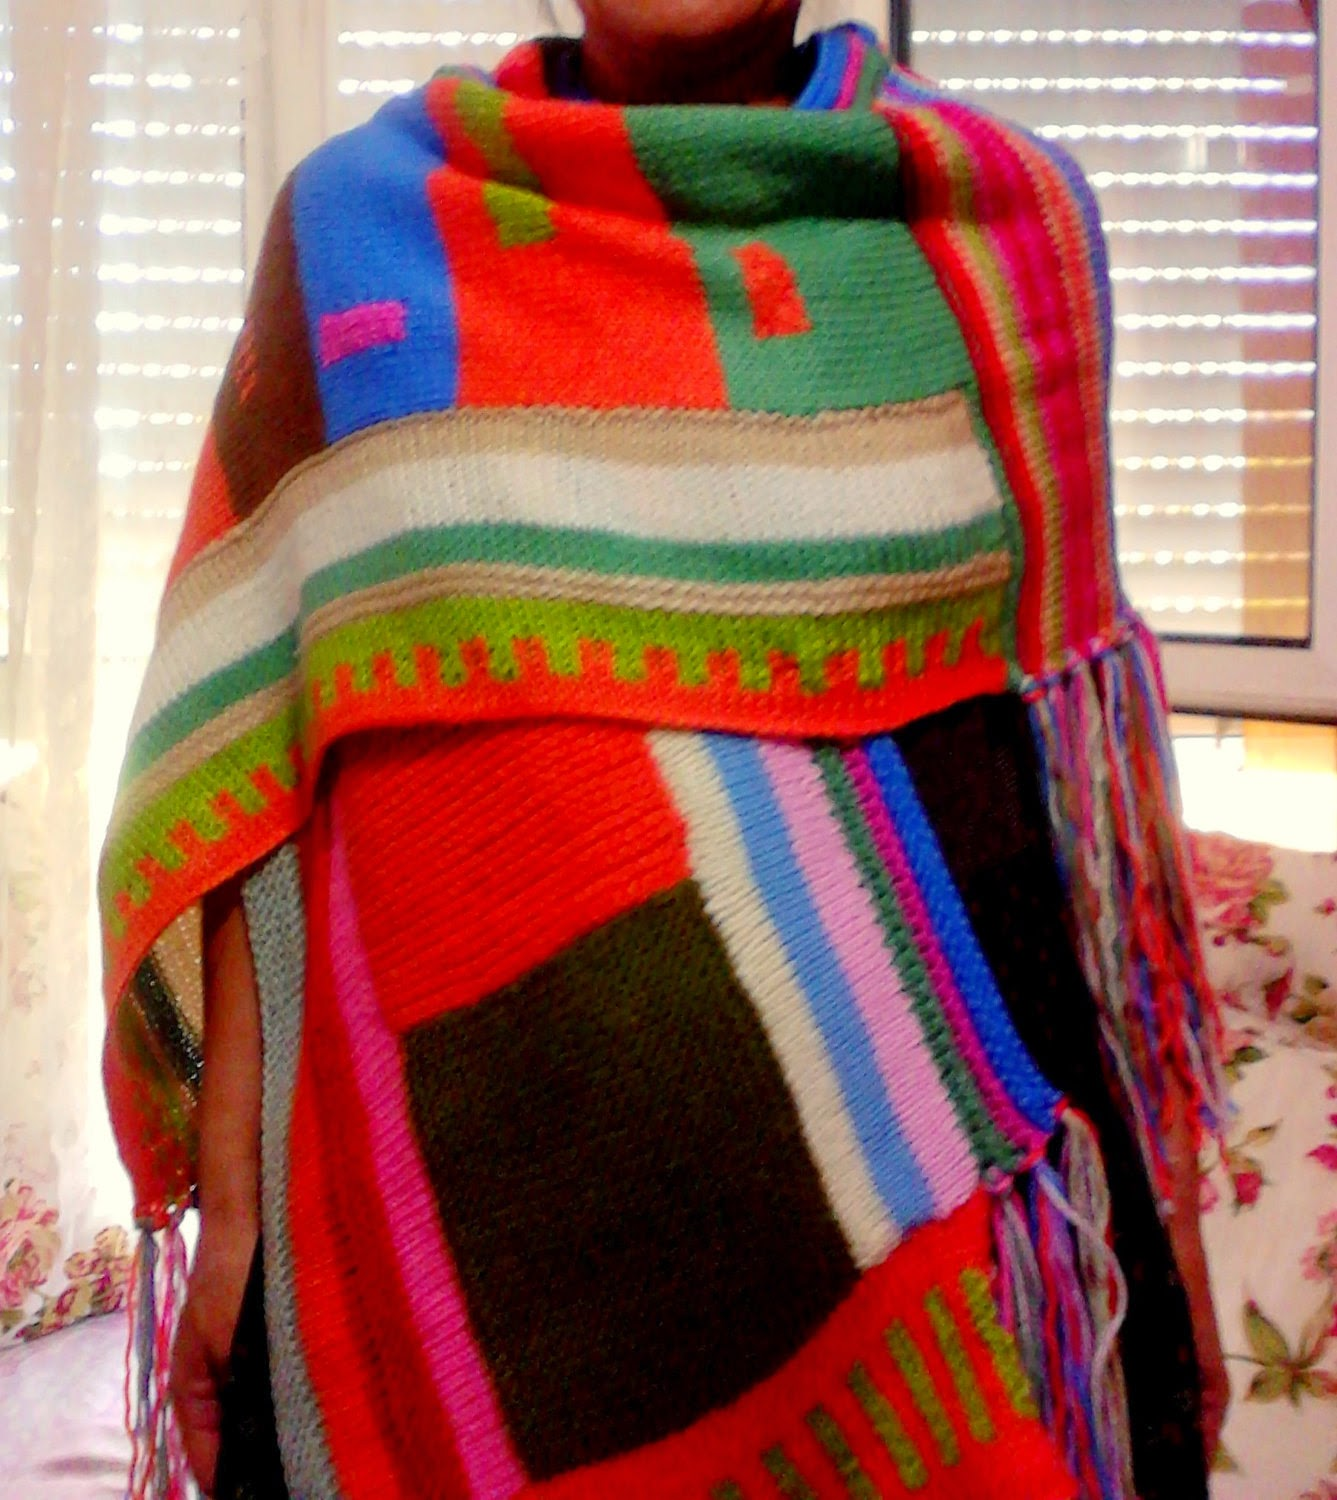 https://www.etsy.com/listing/54246073/hand-knit-shawl-scarf-wrap-joyful-colors